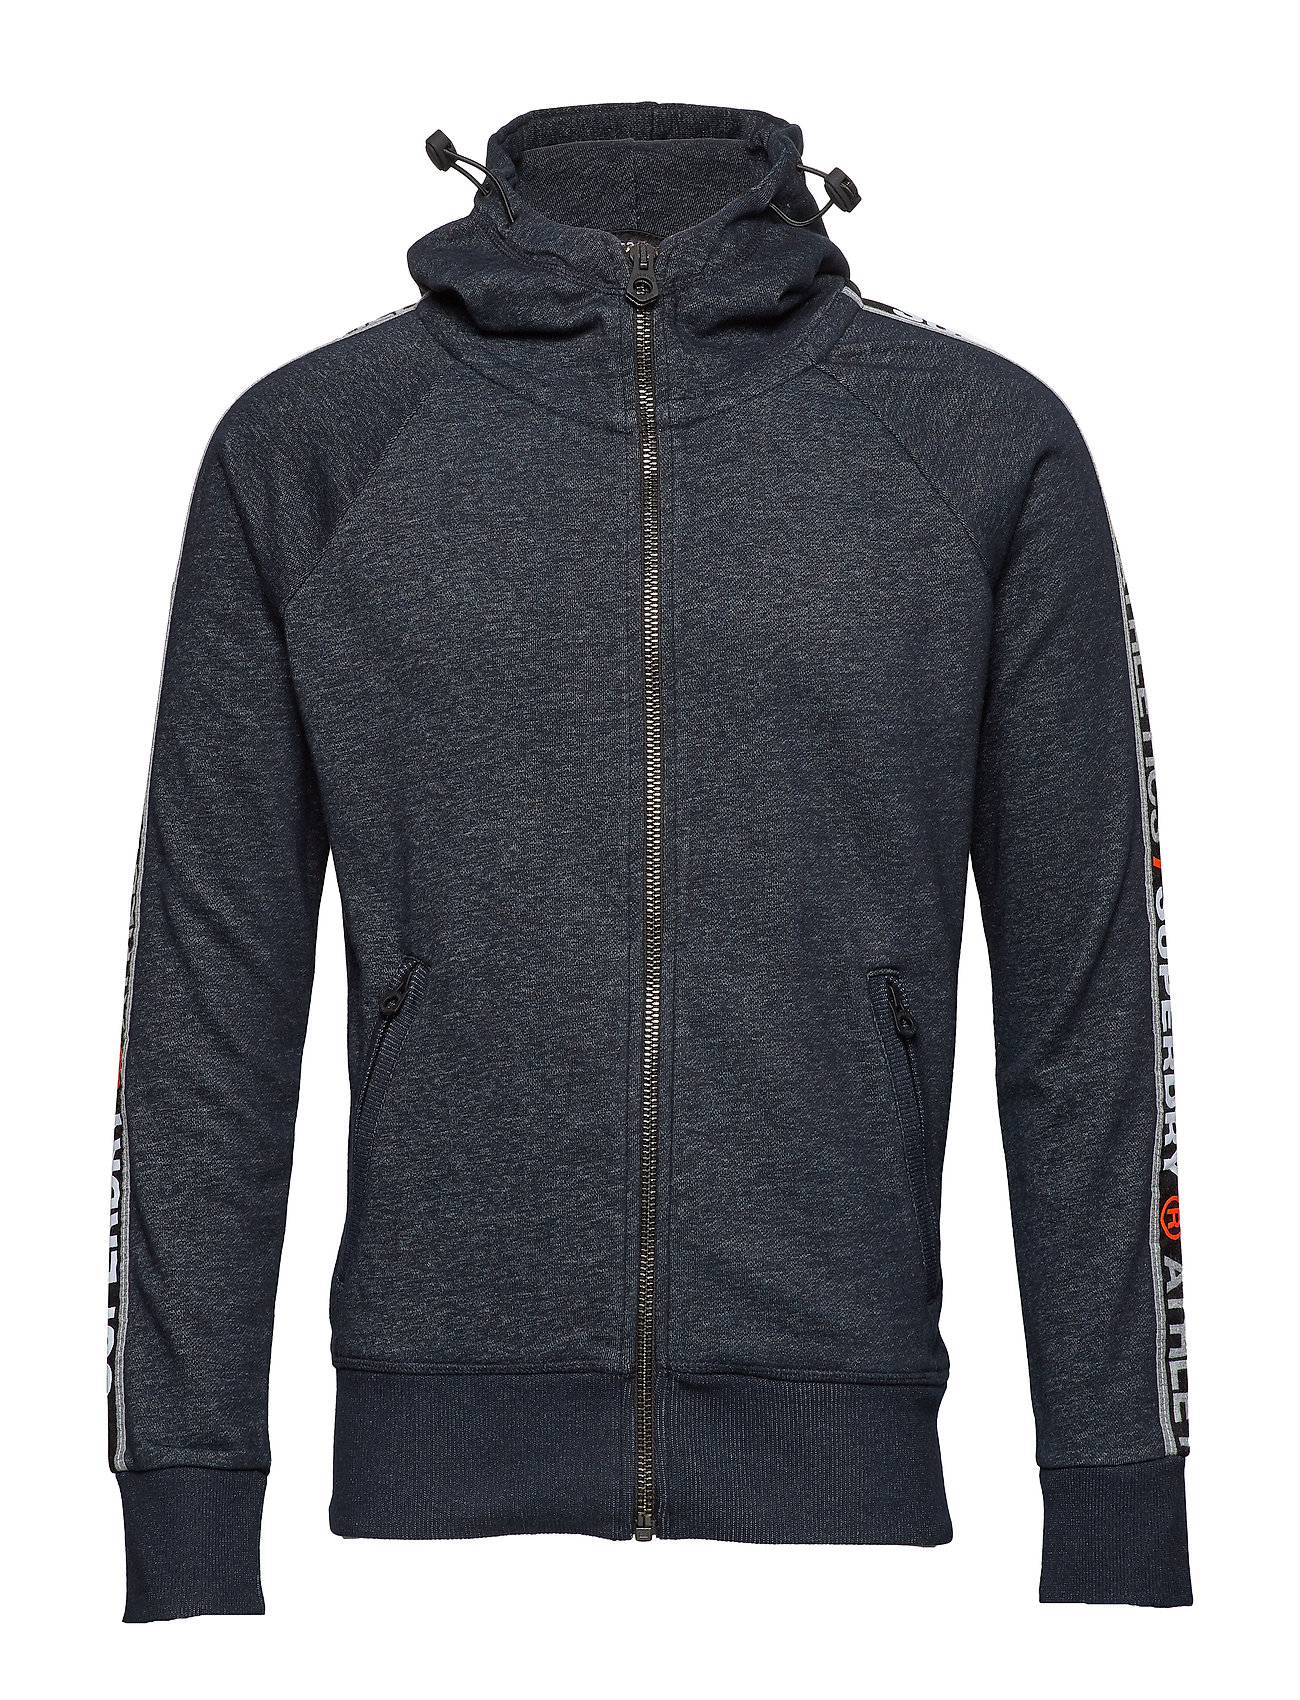 Superdry SUPERDRY STADIUM ZIPHOOD - SUPERDRY STADIUM NAVY GRIT